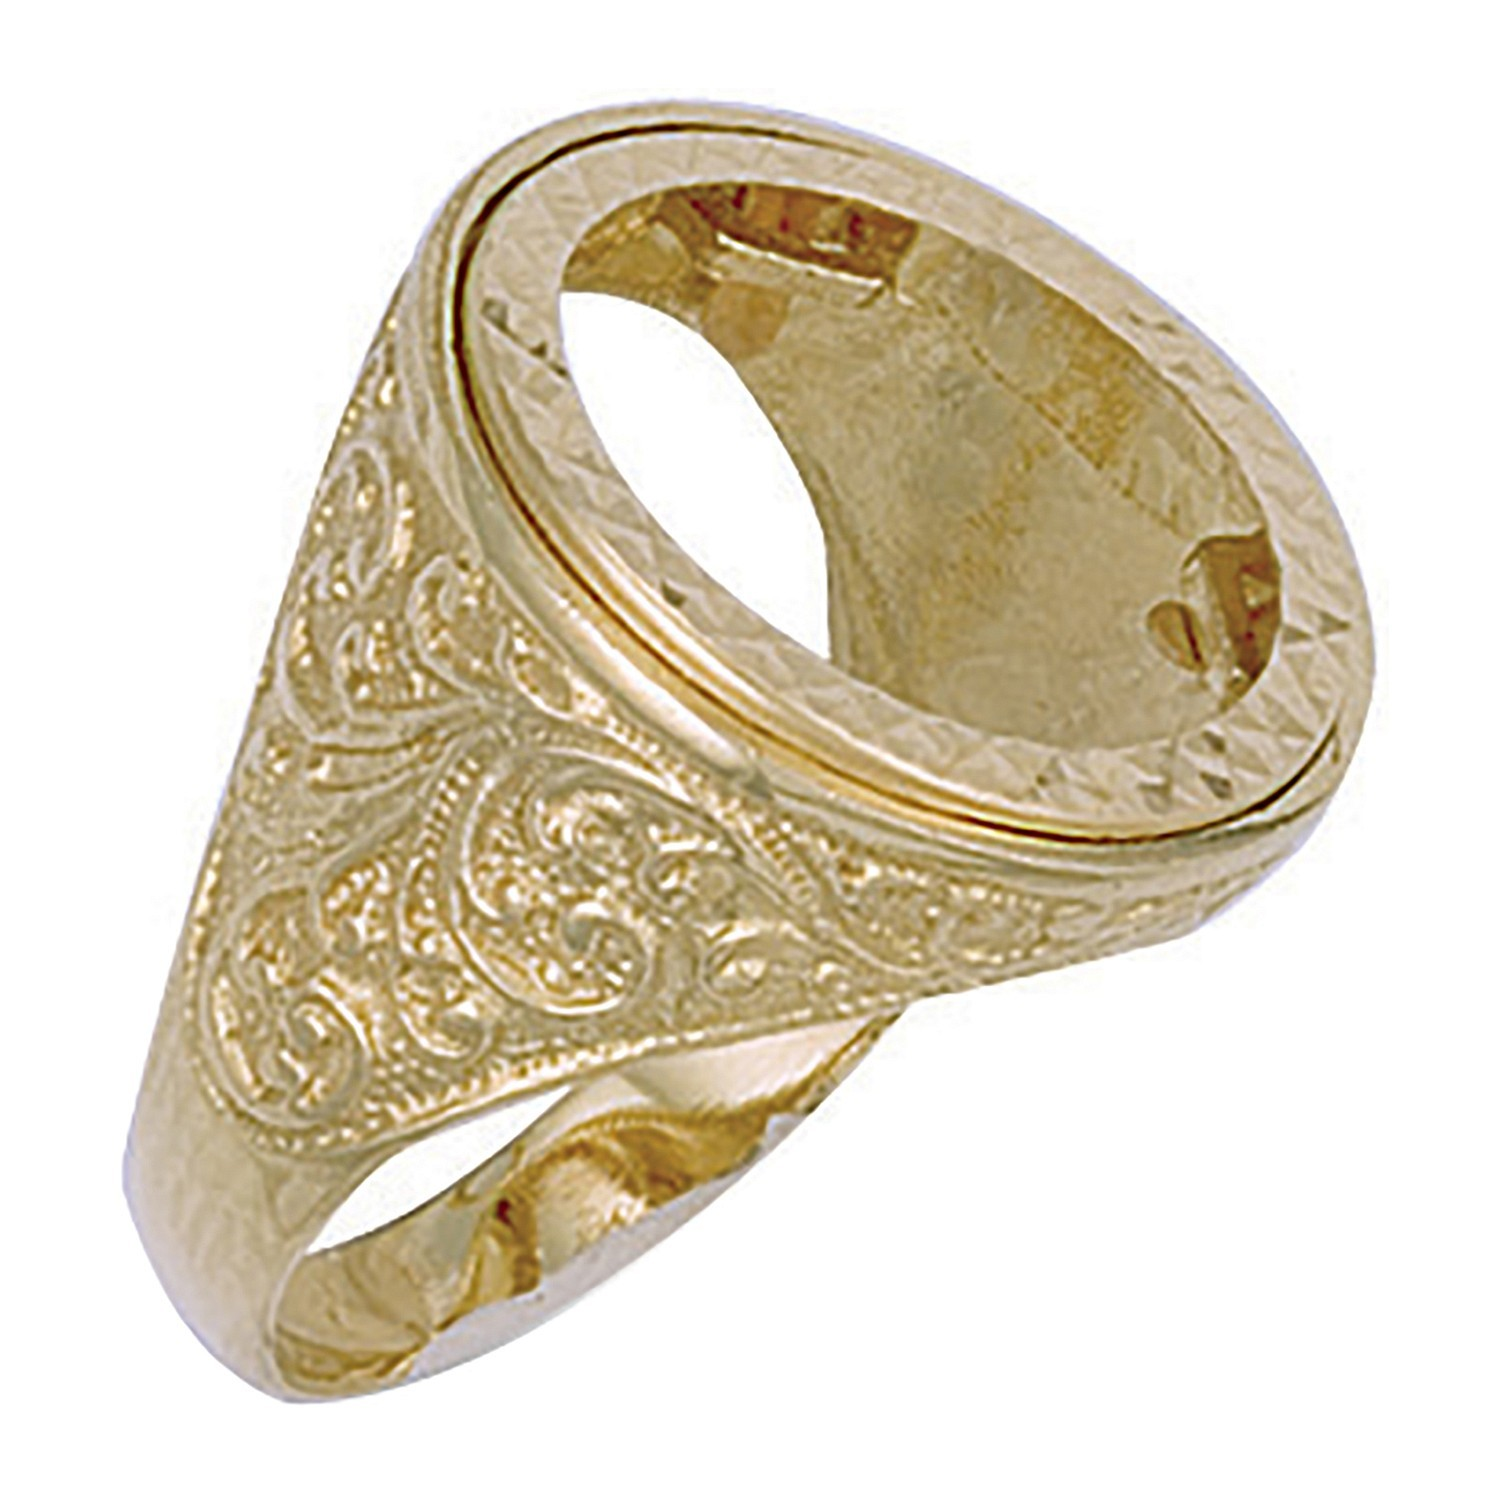 Y/G (Half) Engraved Sides Sovereign Ring